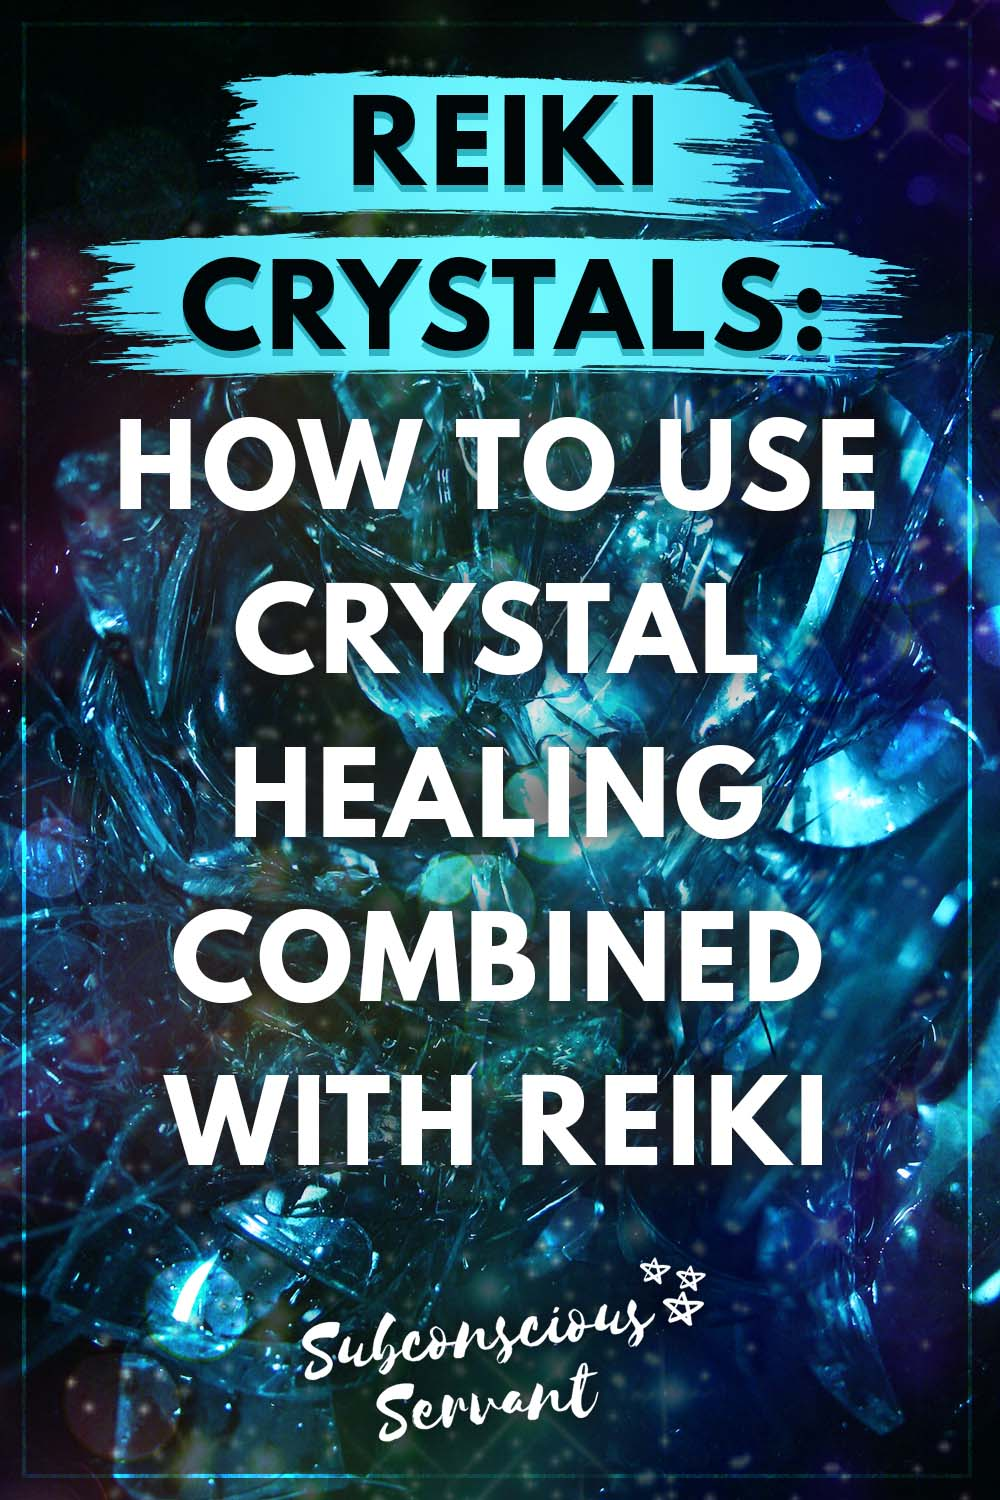 Reiki Crystals: How to use Crystal Healing Combined with Reiki